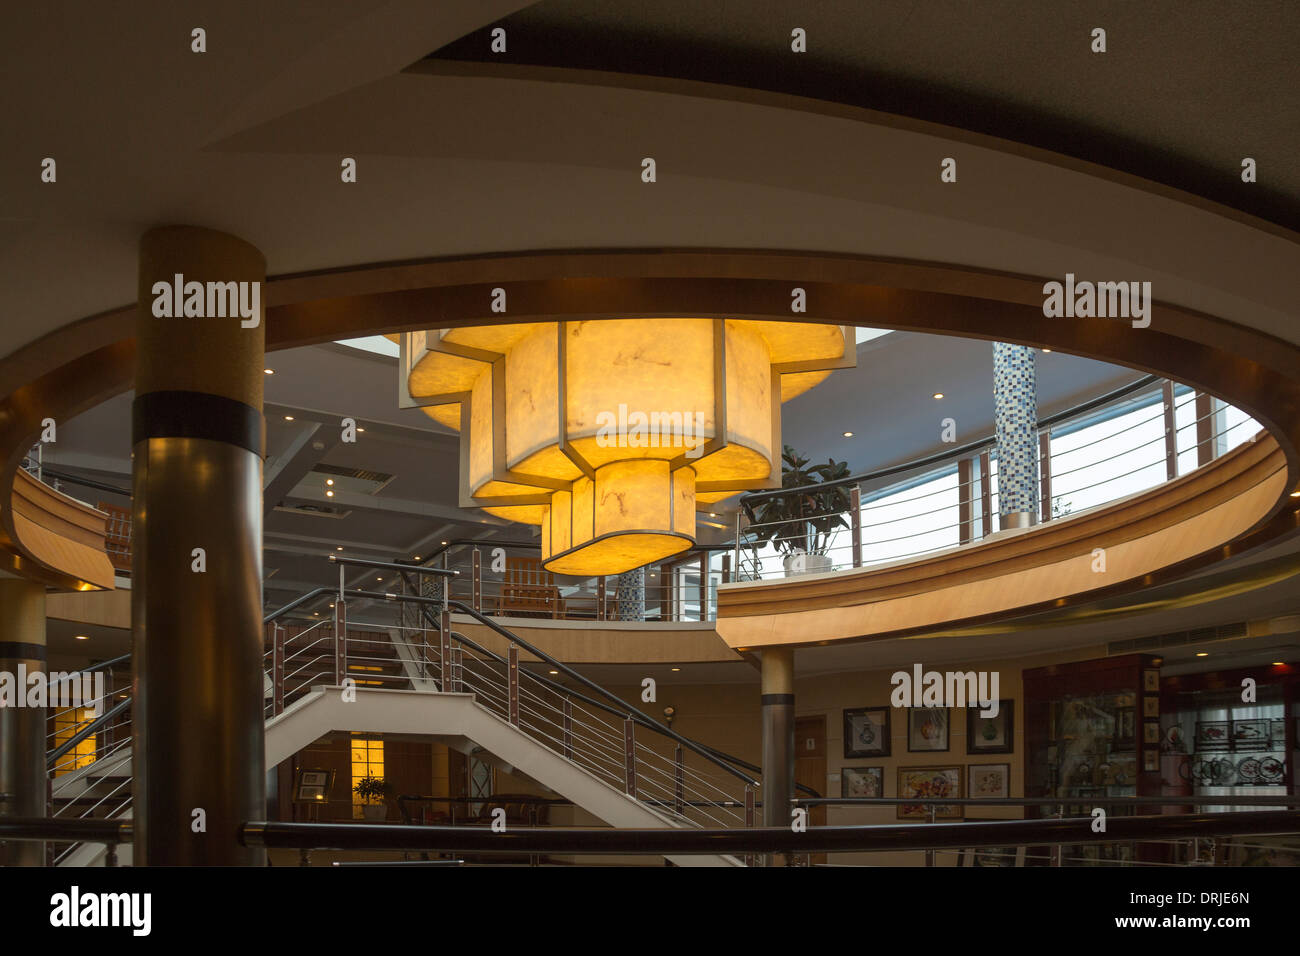 Art-Deco-Interieur des Yangtze Cruise Liner China Stockfoto, Bild ...